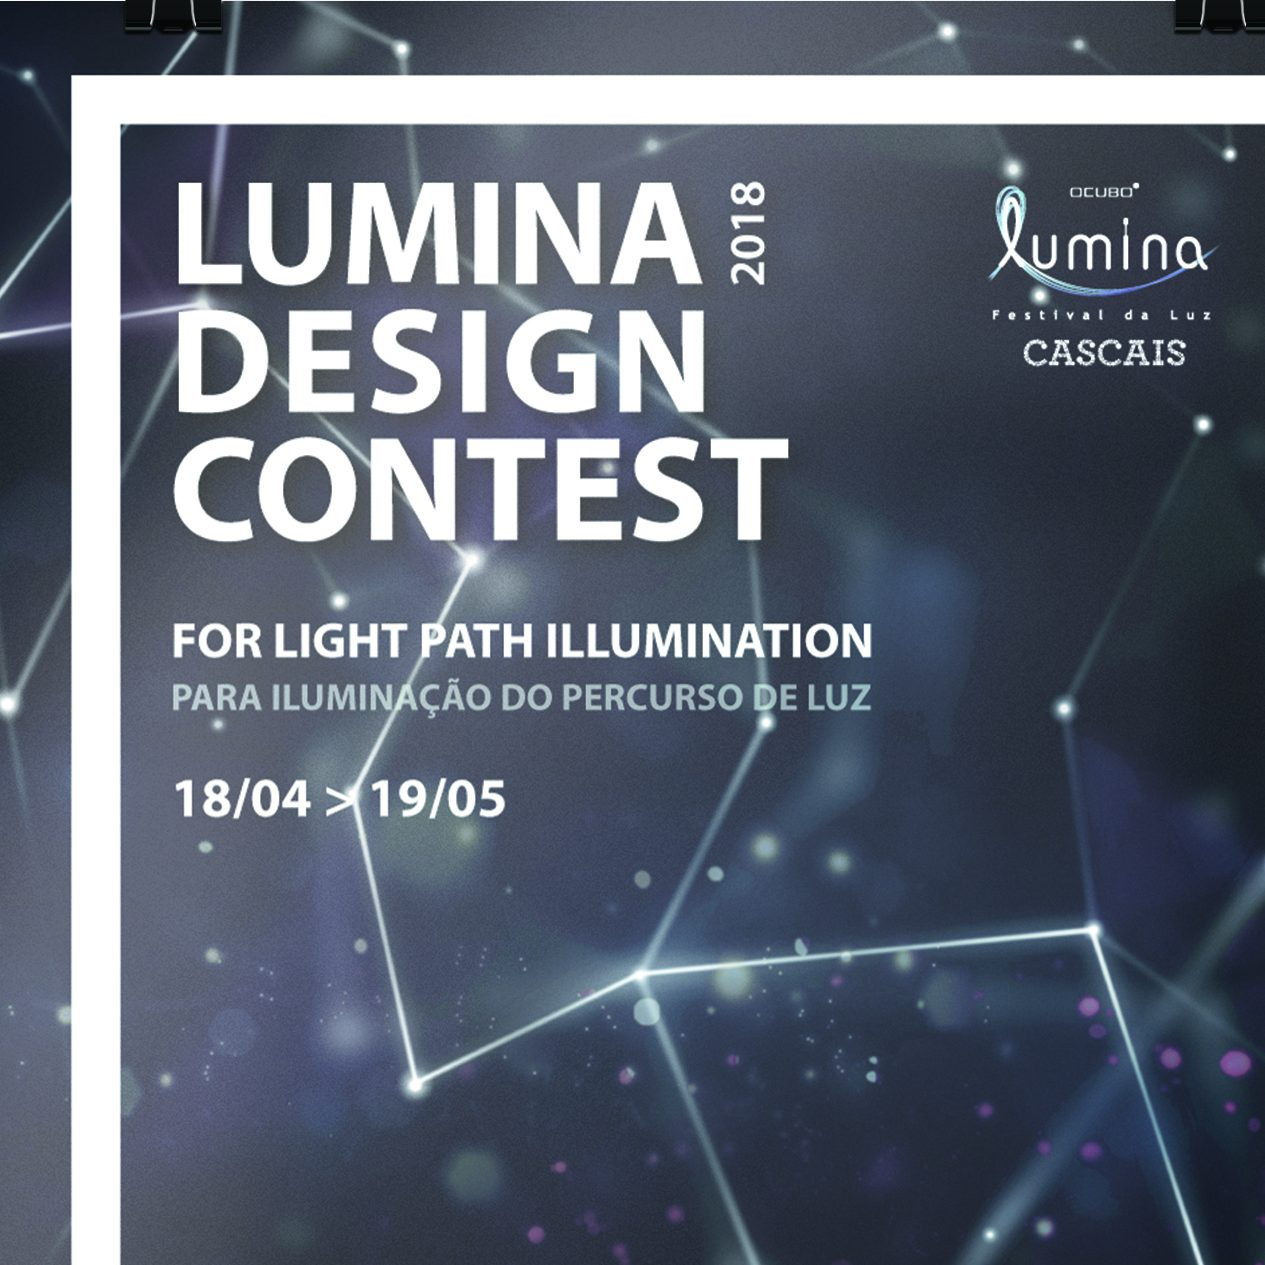 Lumina Design Contest 2018